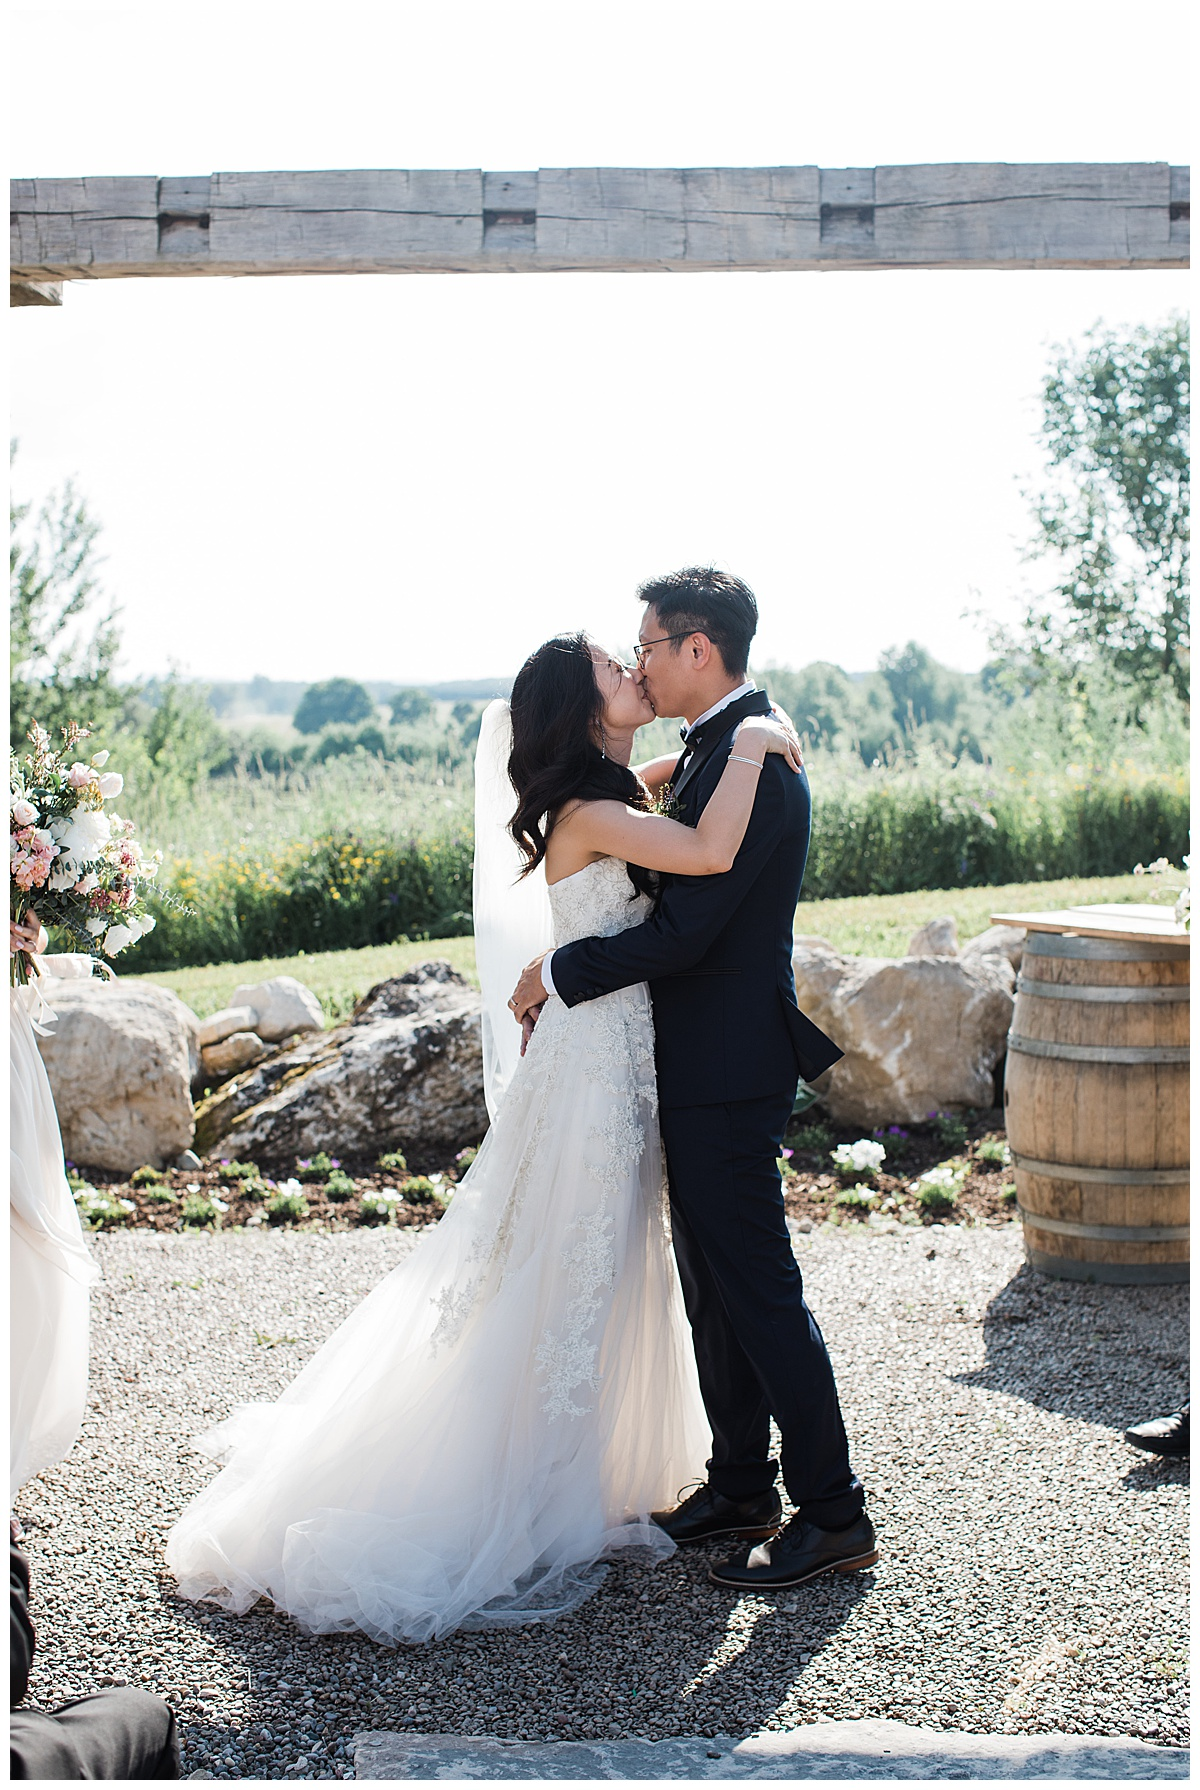 You may kiss the bride| first kiss at wedding alter| outdoor wedding| winery wedding| Adamo Estate Winery Wedding| 3photography